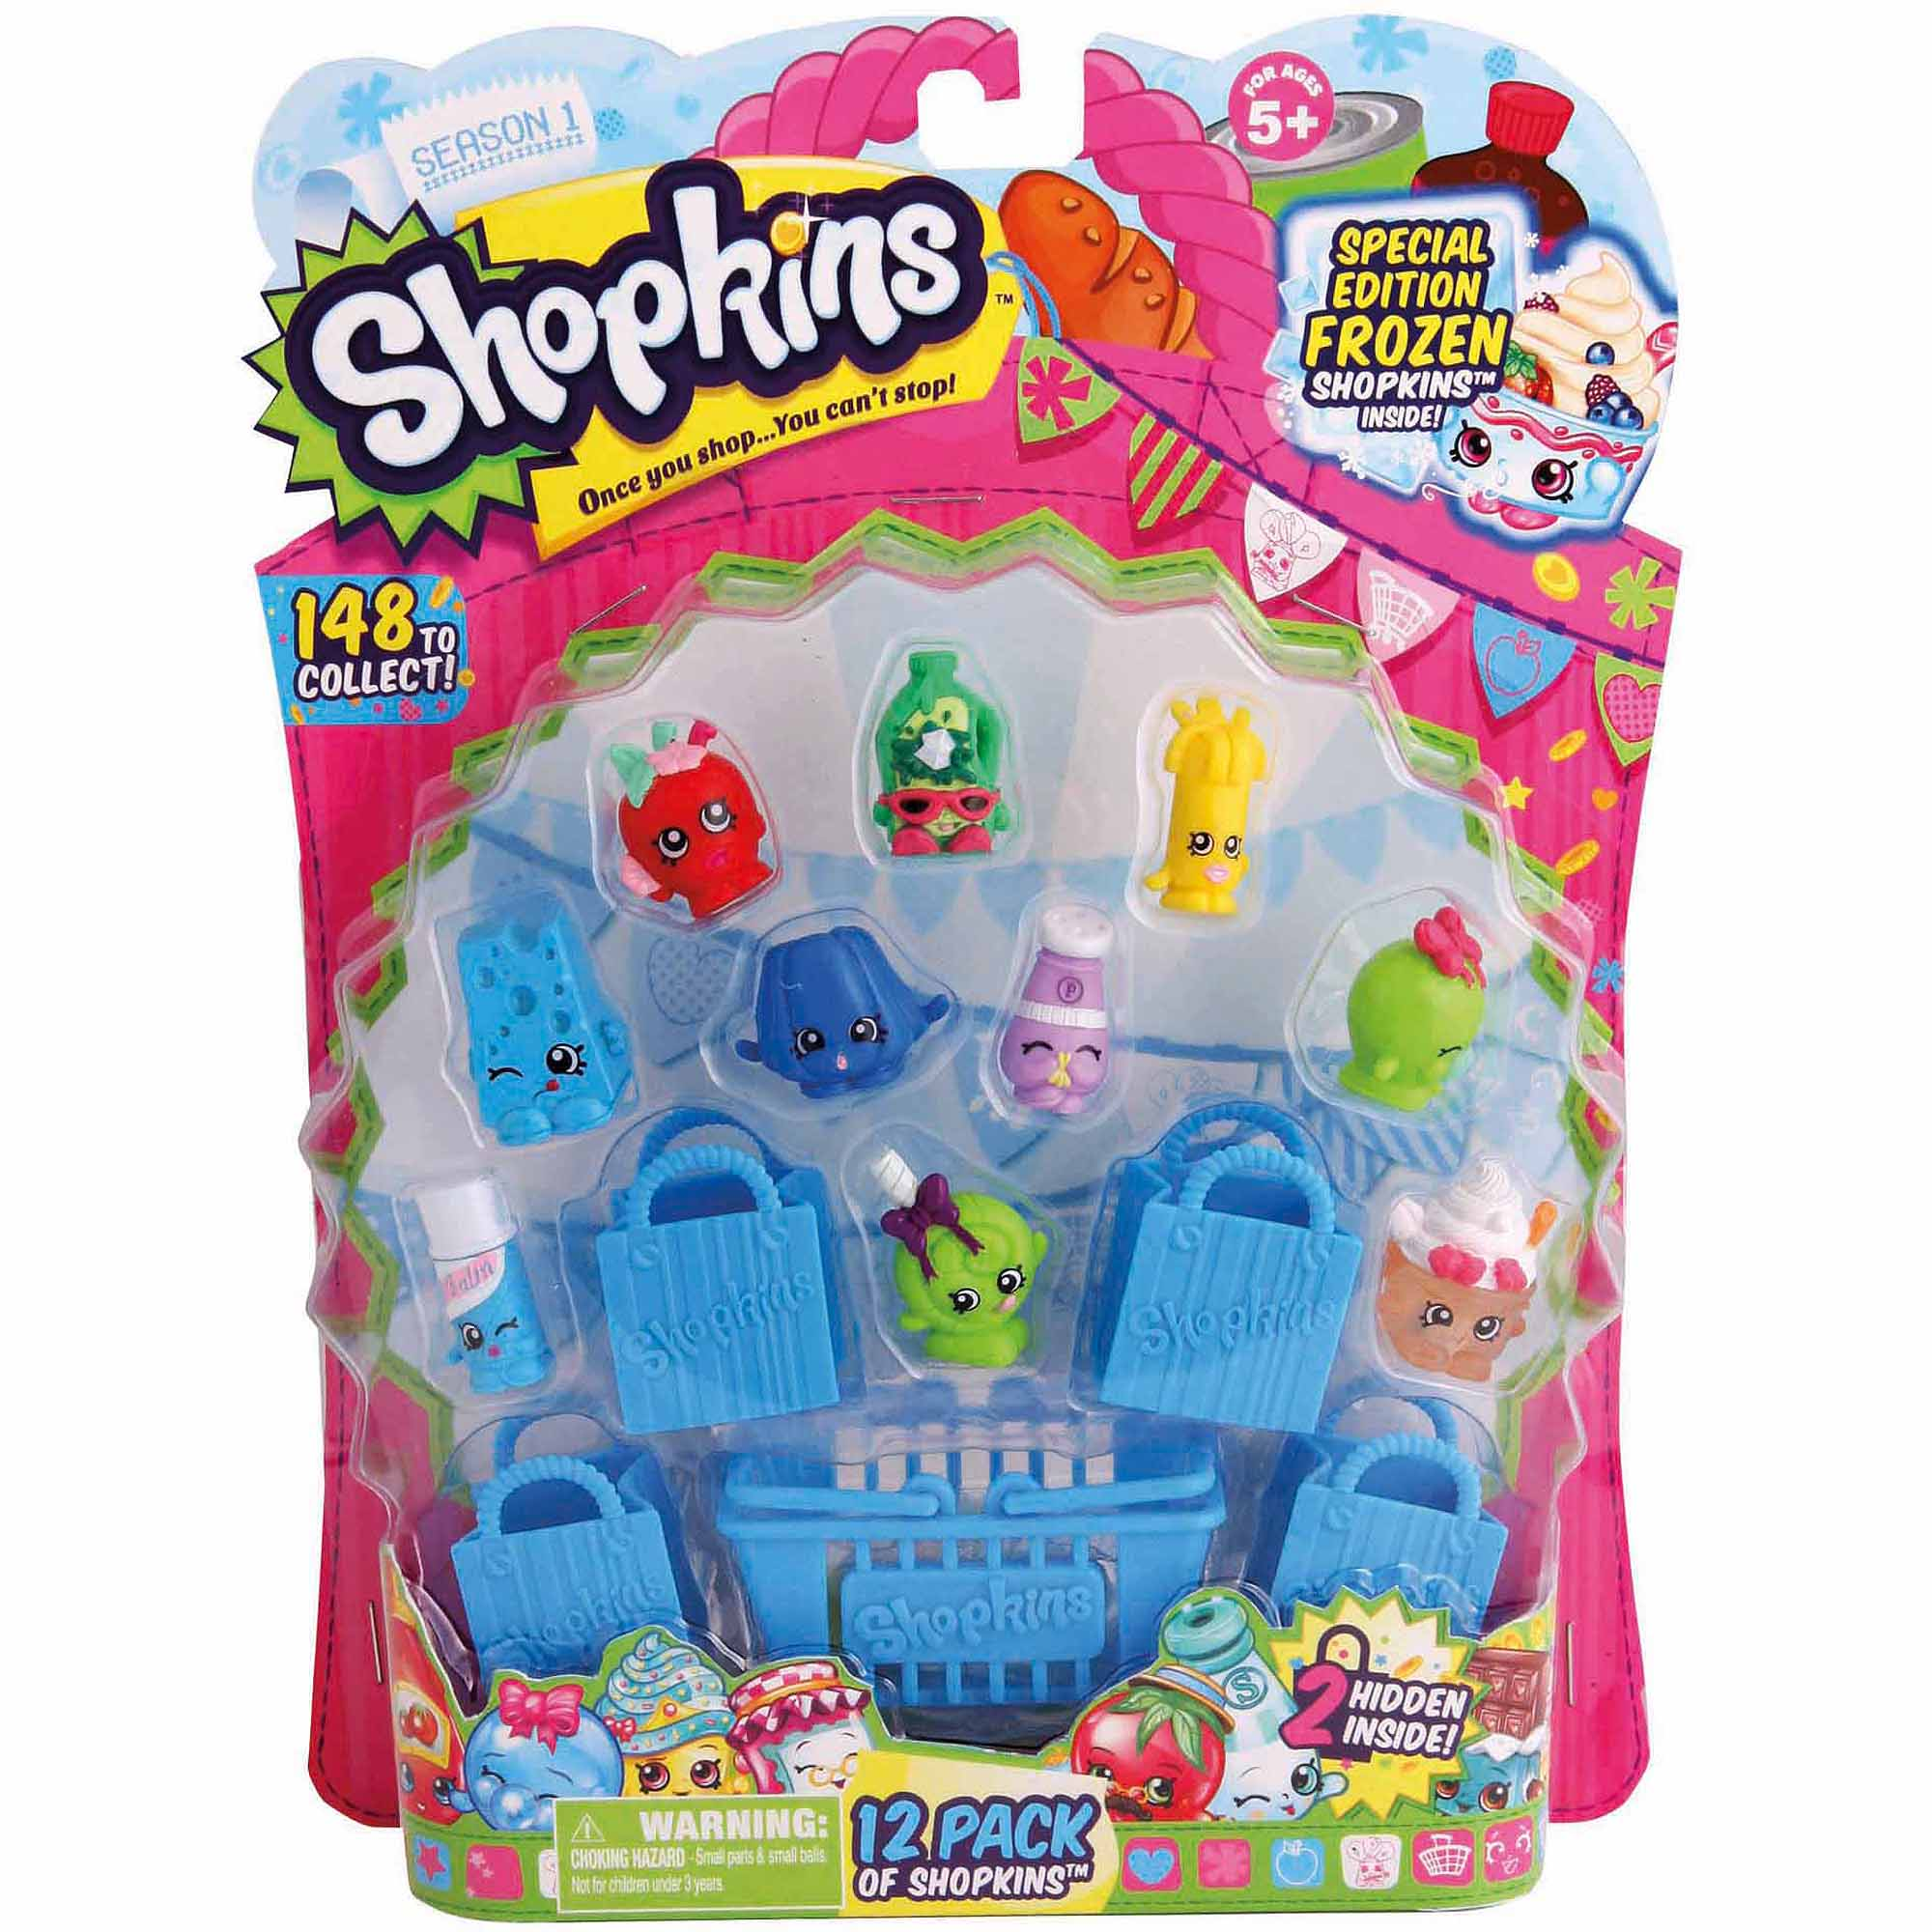 Shopkins 12-Pack